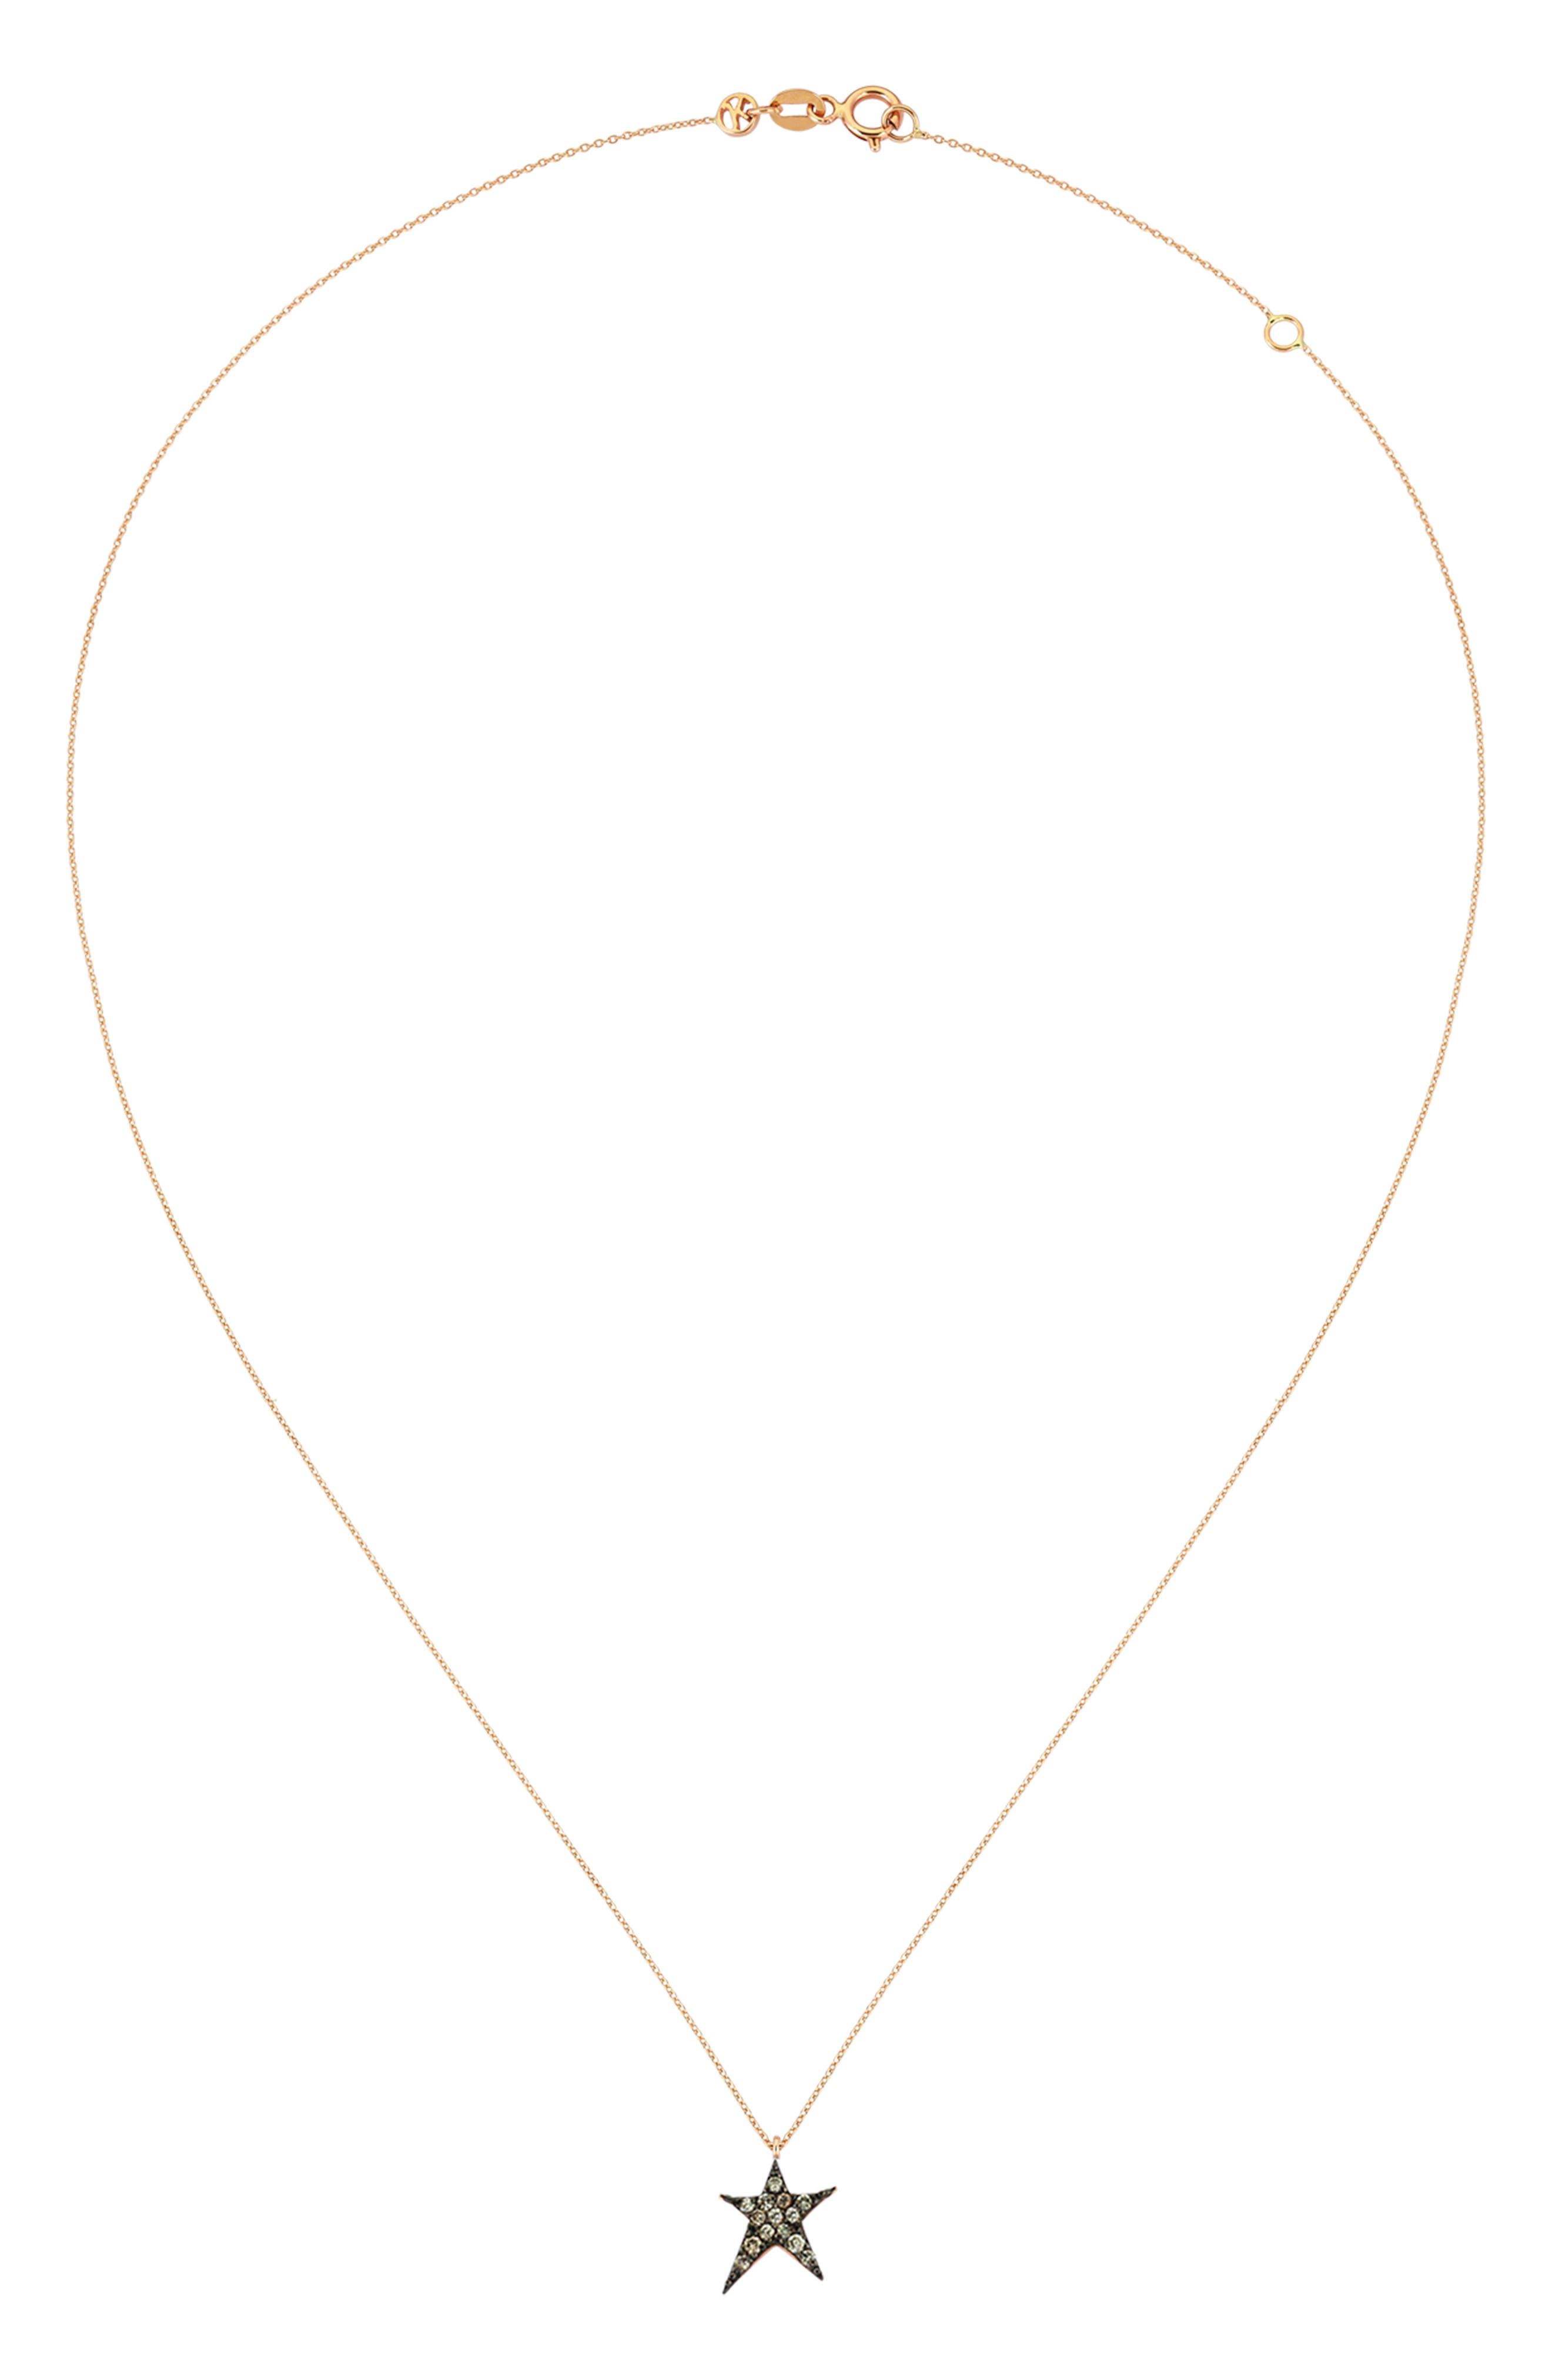 Struck Star Champagne Diamond Necklace,                             Alternate thumbnail 2, color,                             ROSE GOLD